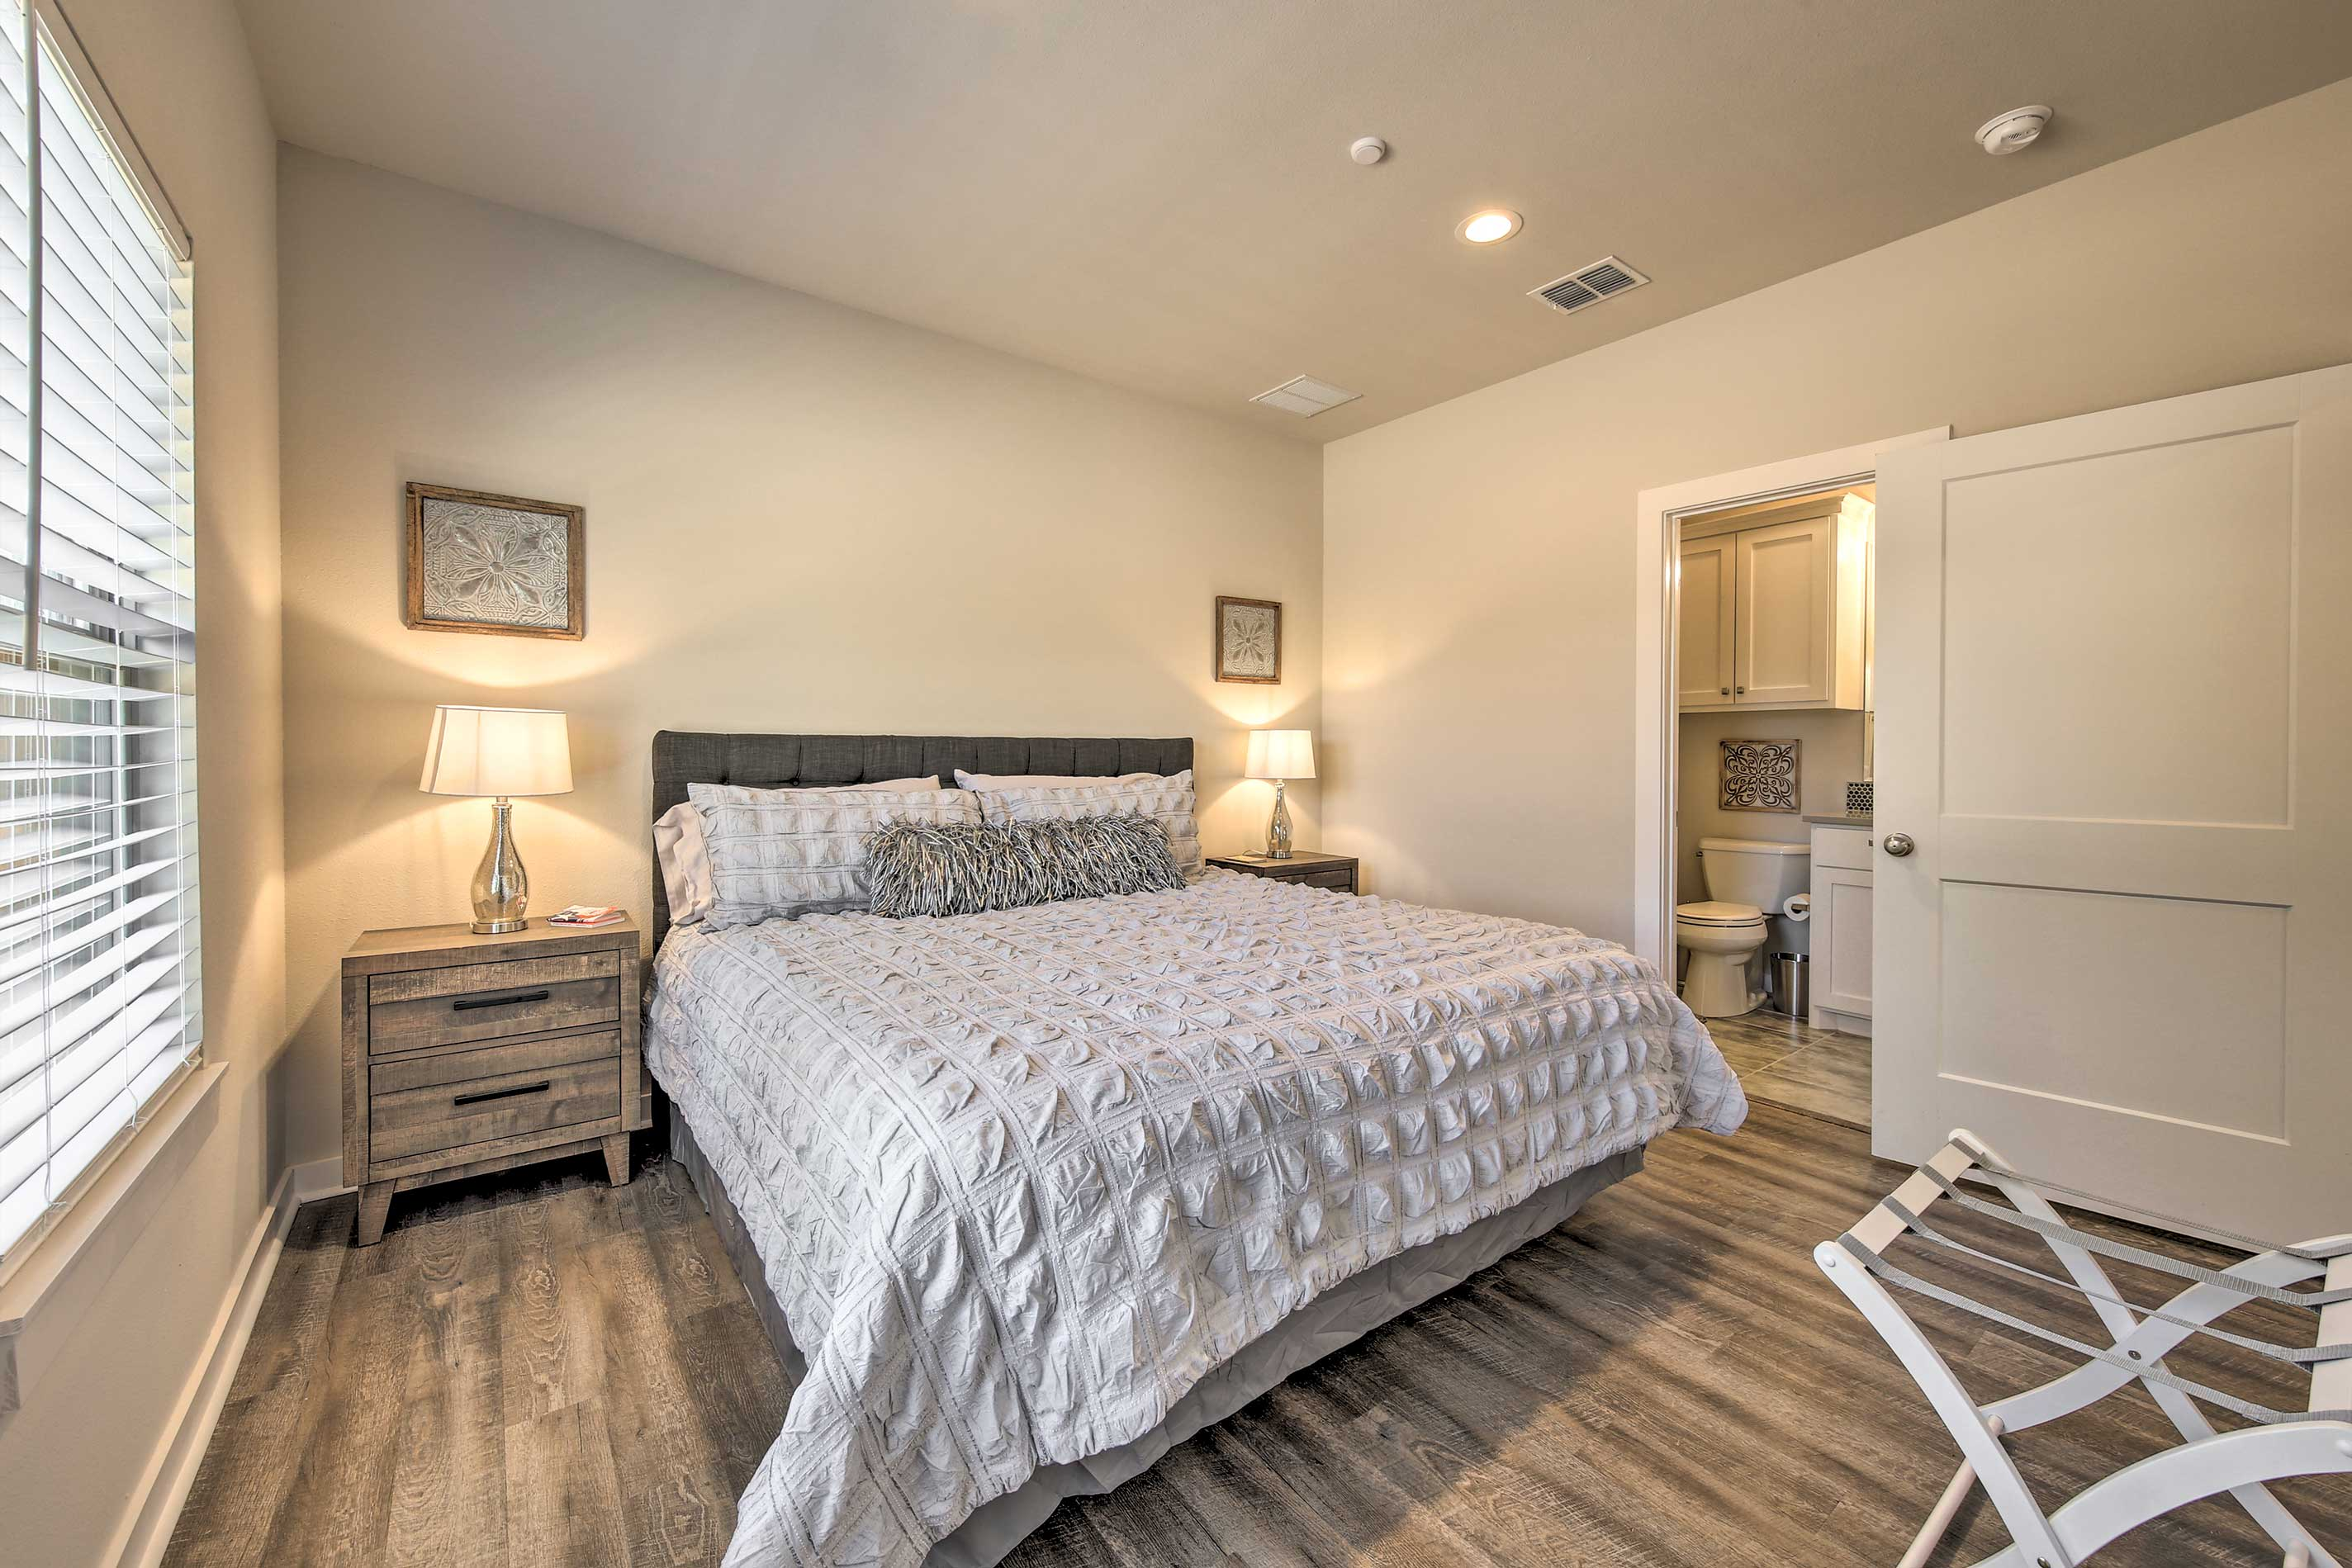 The bedroom houses a king-sized bed and ample closet storage.